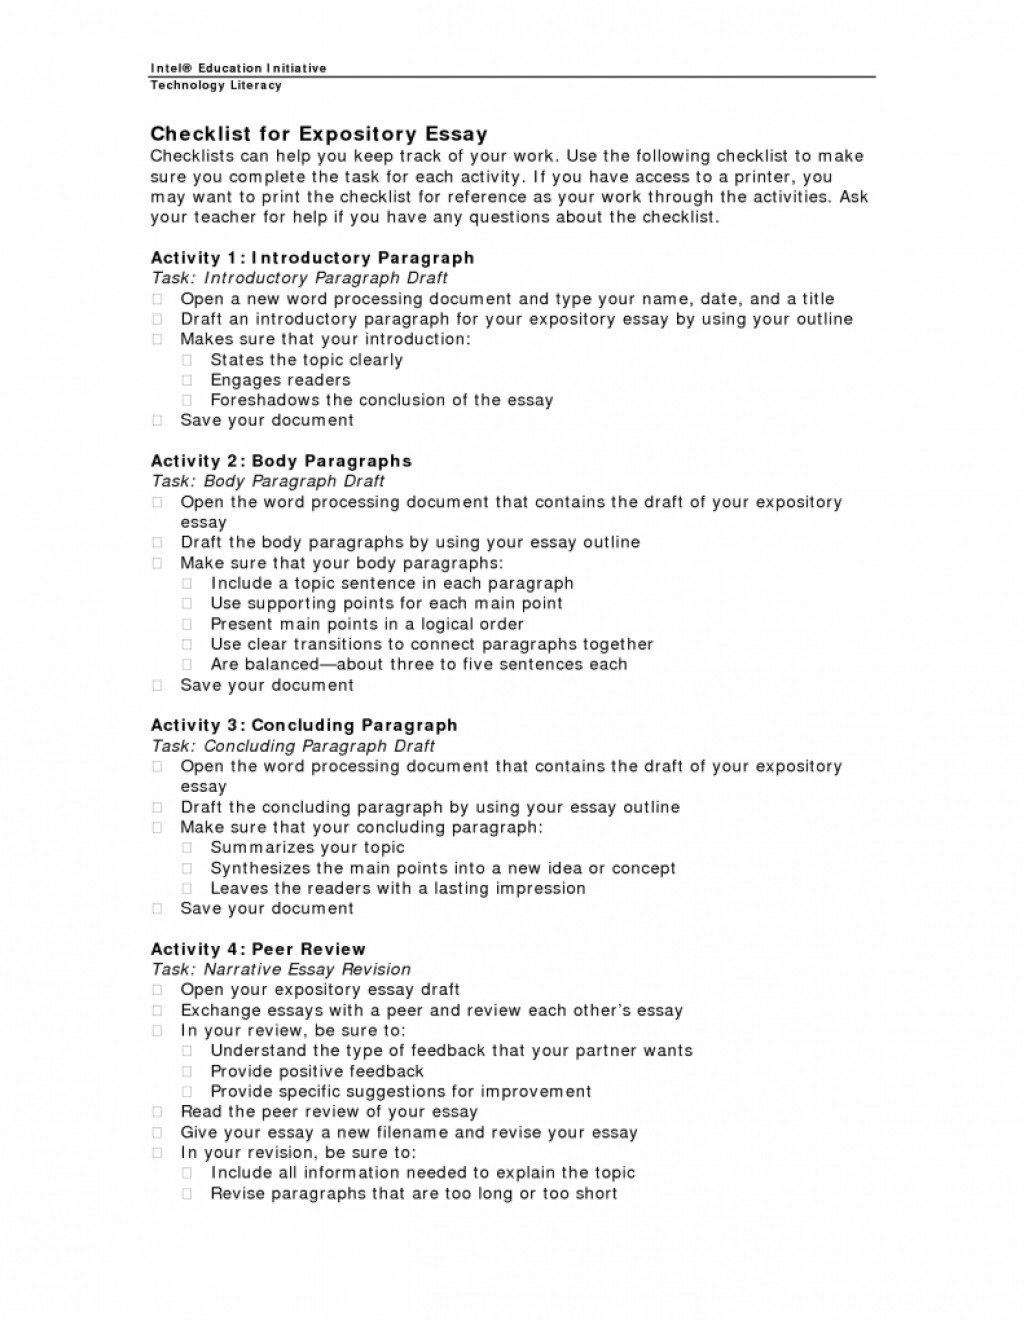 015 Essay Example Expository Checklist 791x1024 Informative Frightening Examples For High School Pdf Large